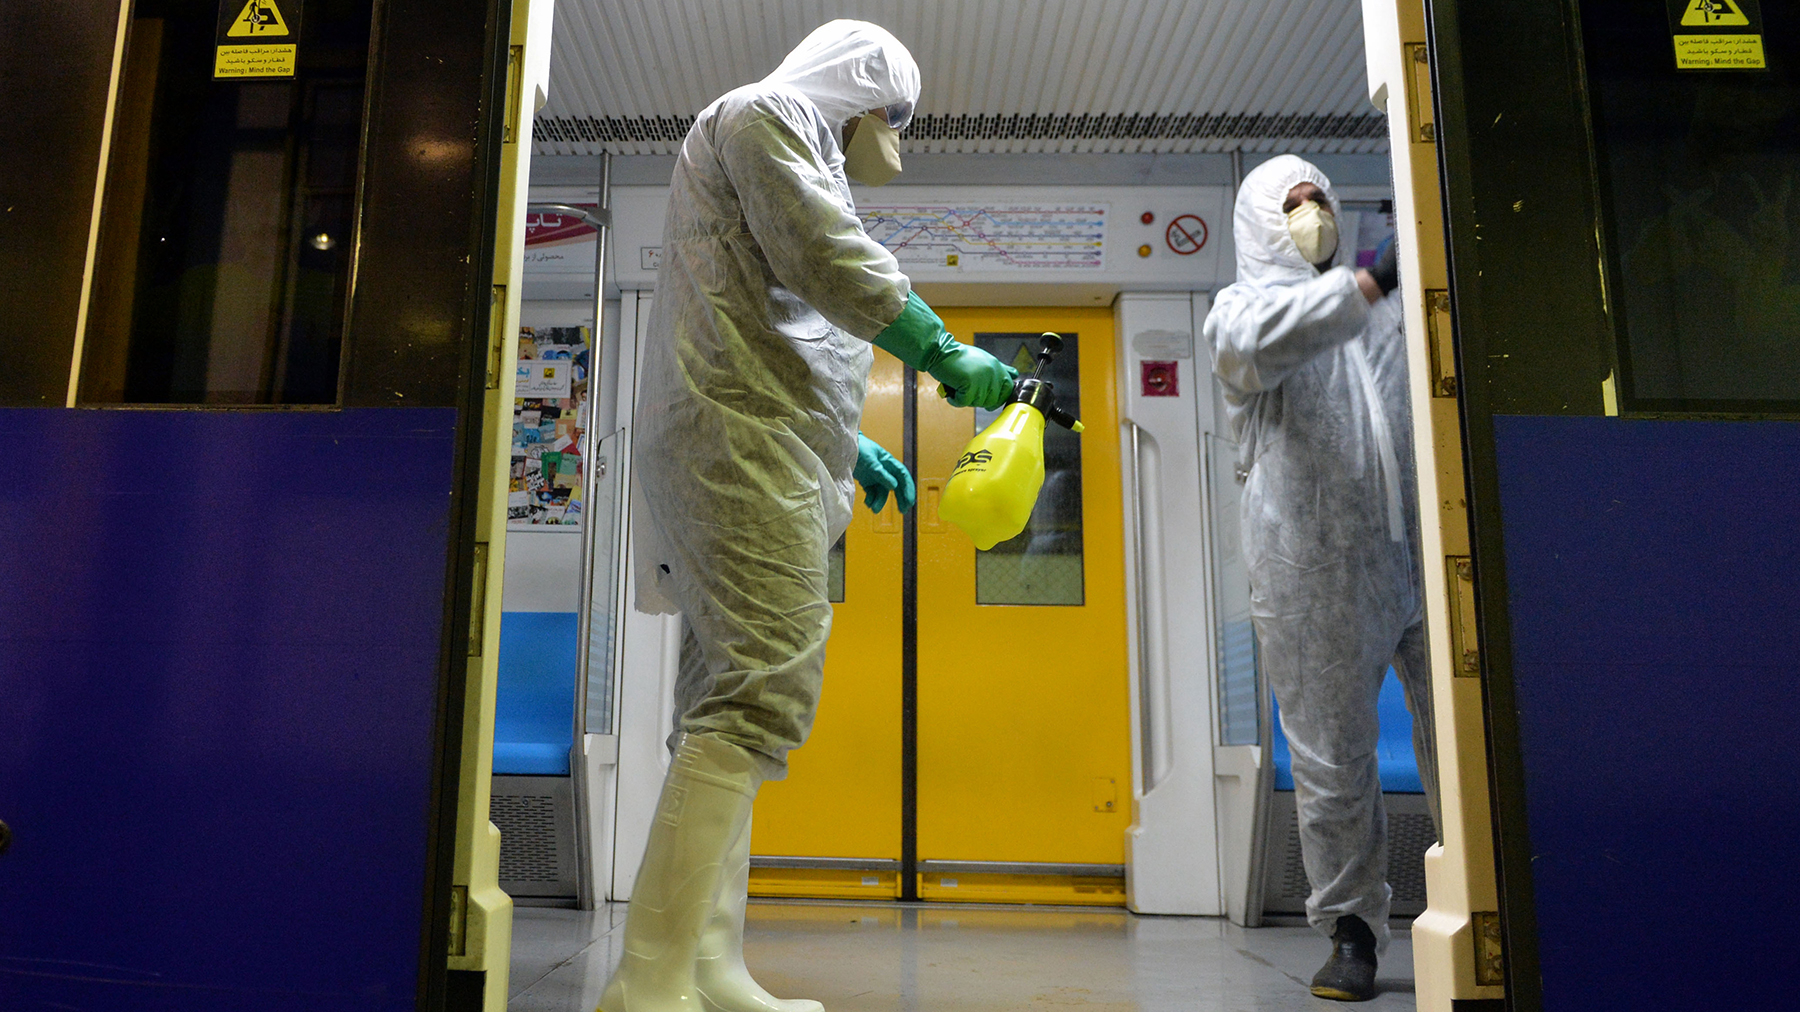 Officials disinfect subway trains to prevent the spread of coronavirus in Tehran, Iran, on February 26, 2020. (Photo by Fatemeh Bahrami/Anadolu Agency via Getty Images)